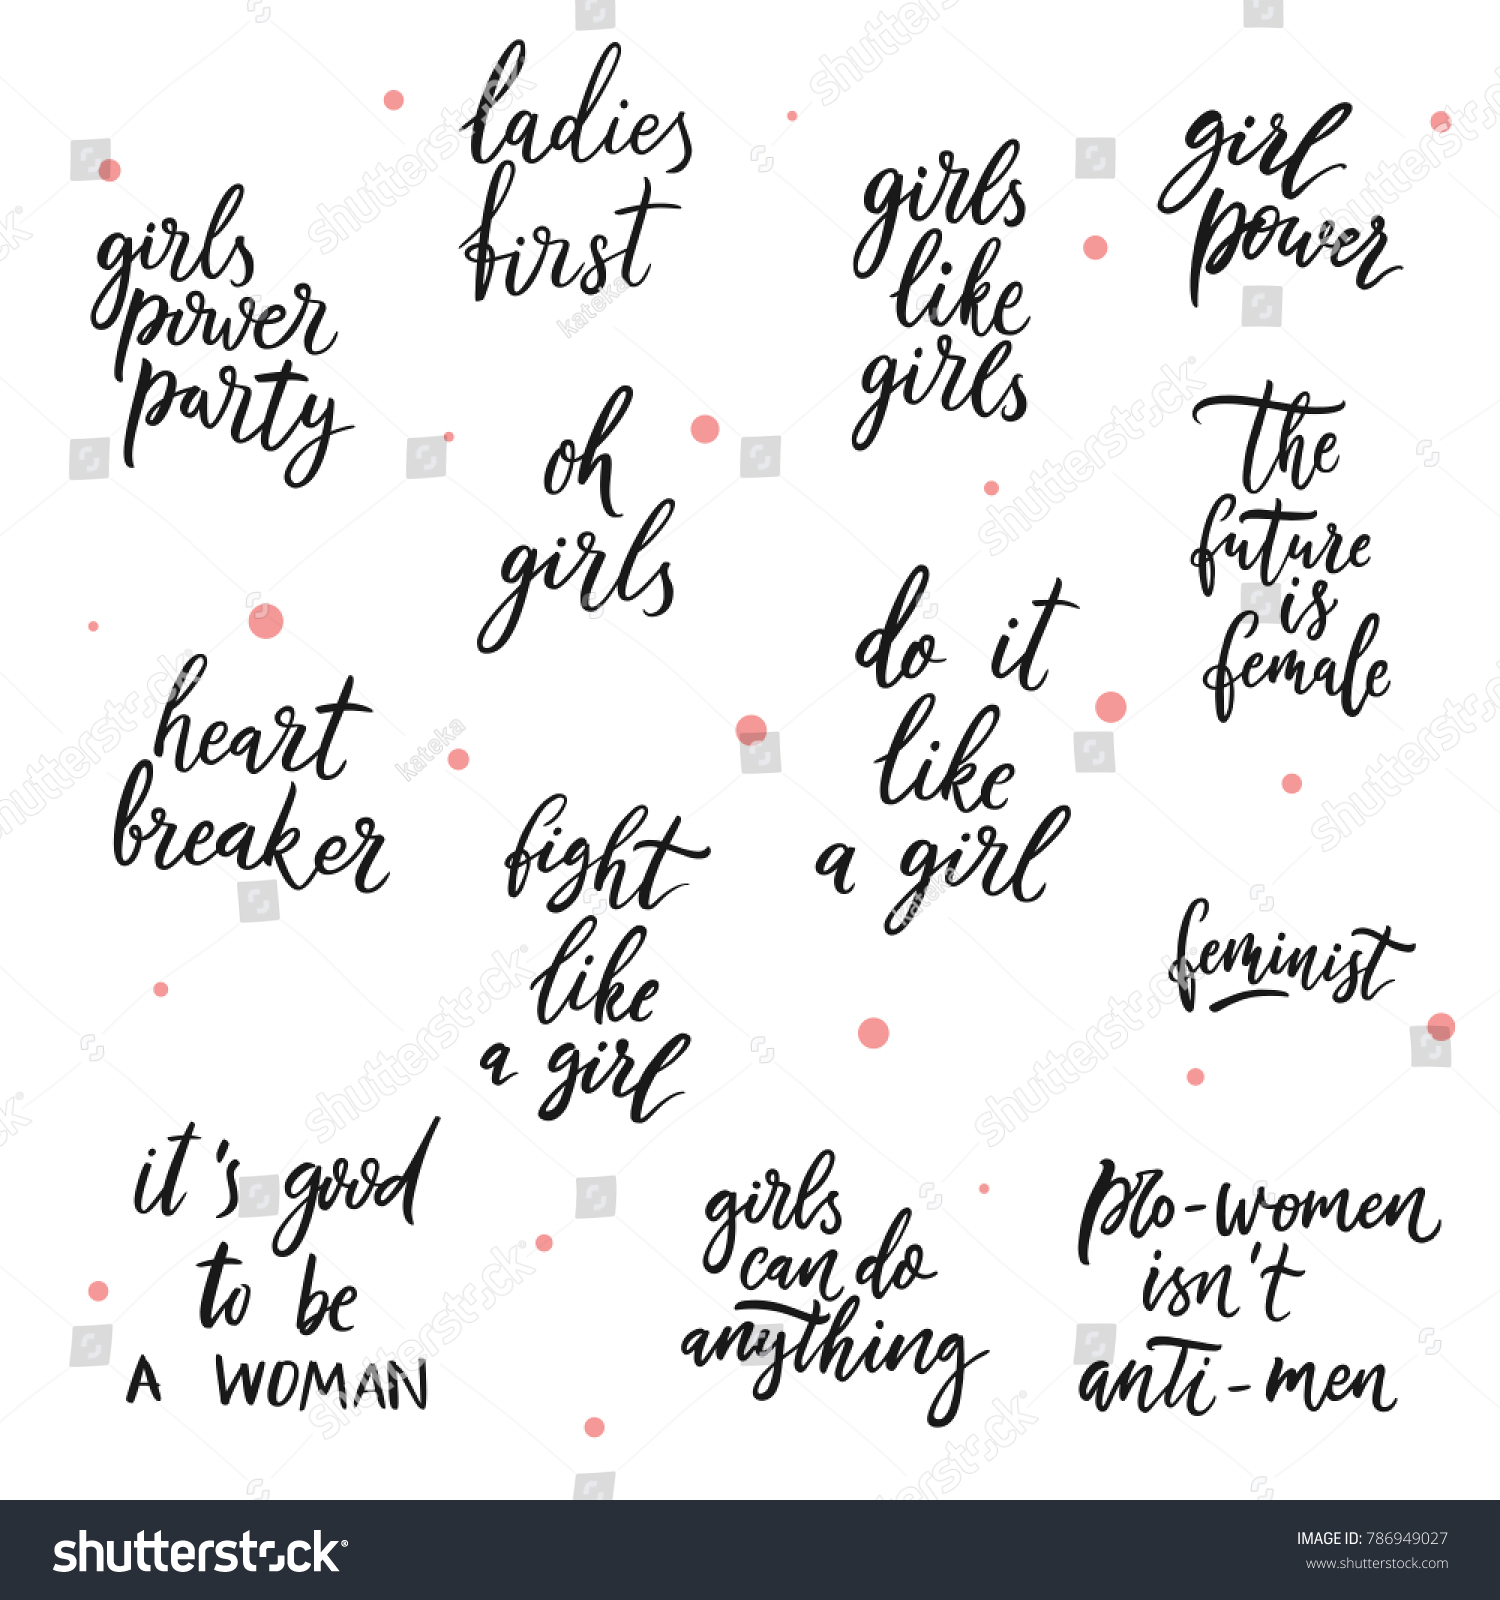 Good Quotes For Girls Set Girls Vector Quotes Girls Power Stock Vector 786949027